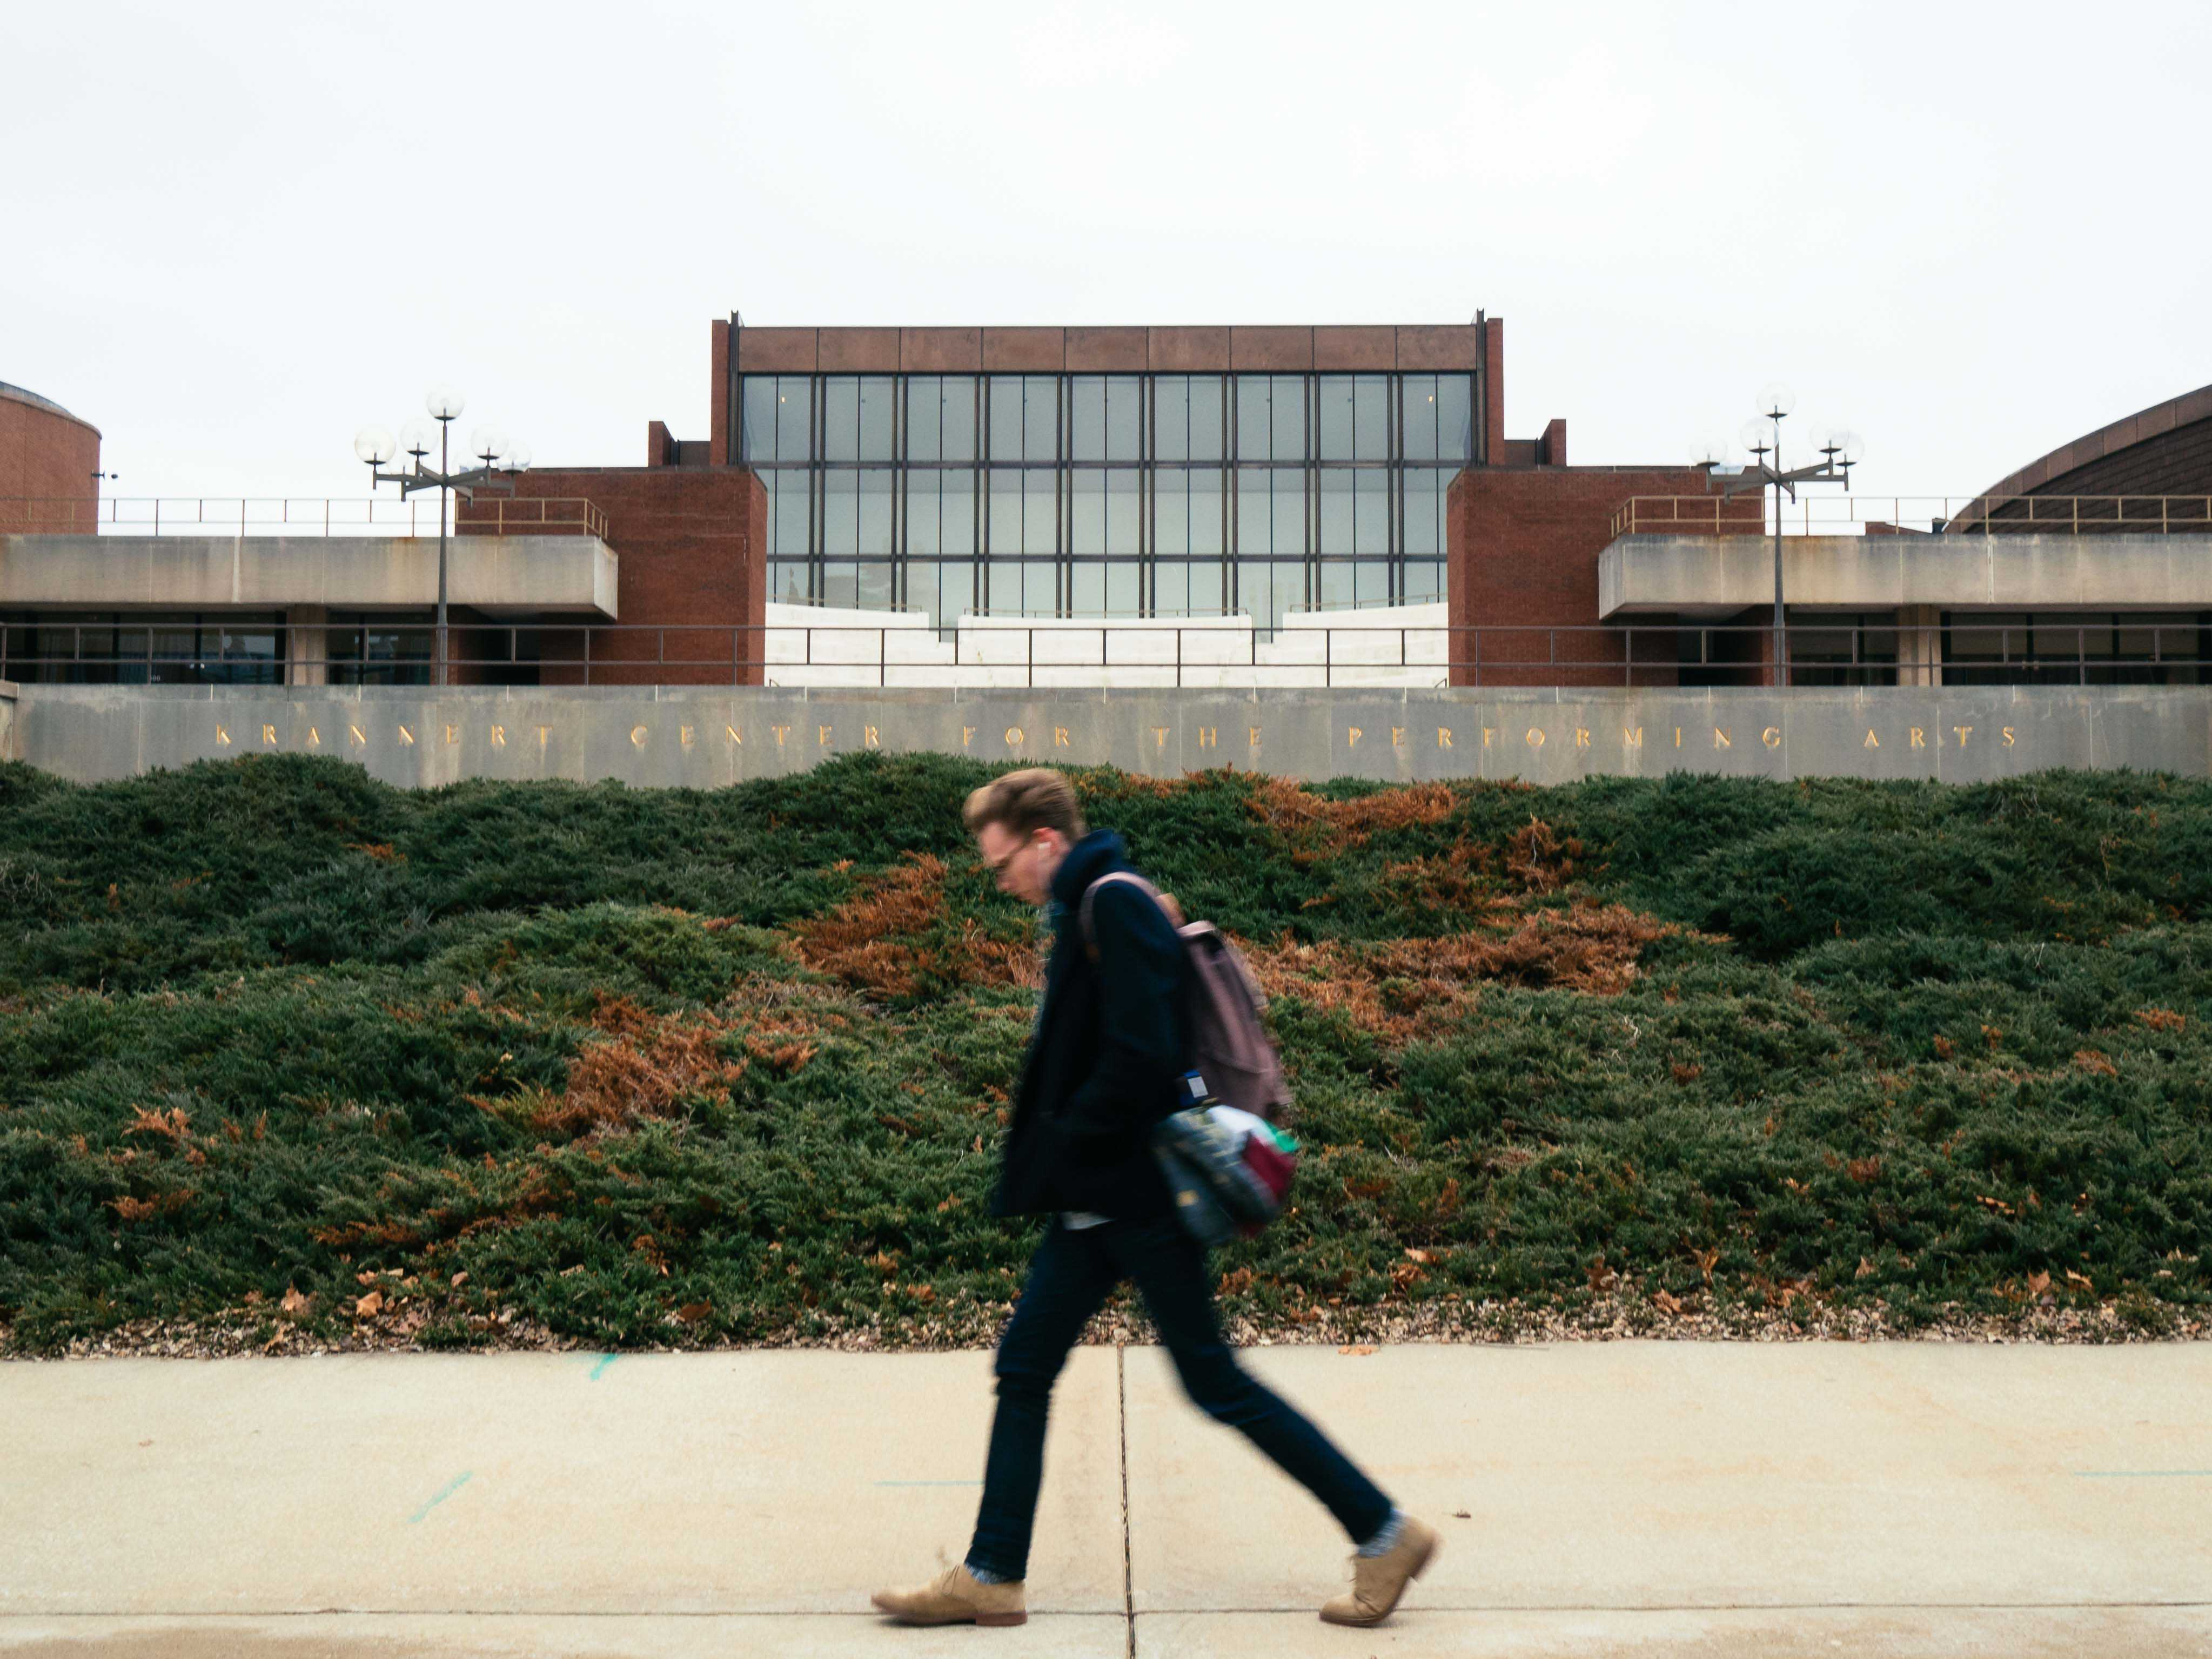 A student walks past the Krannert Center for the Performing Arts on Friday, Jan. 27, 2017.